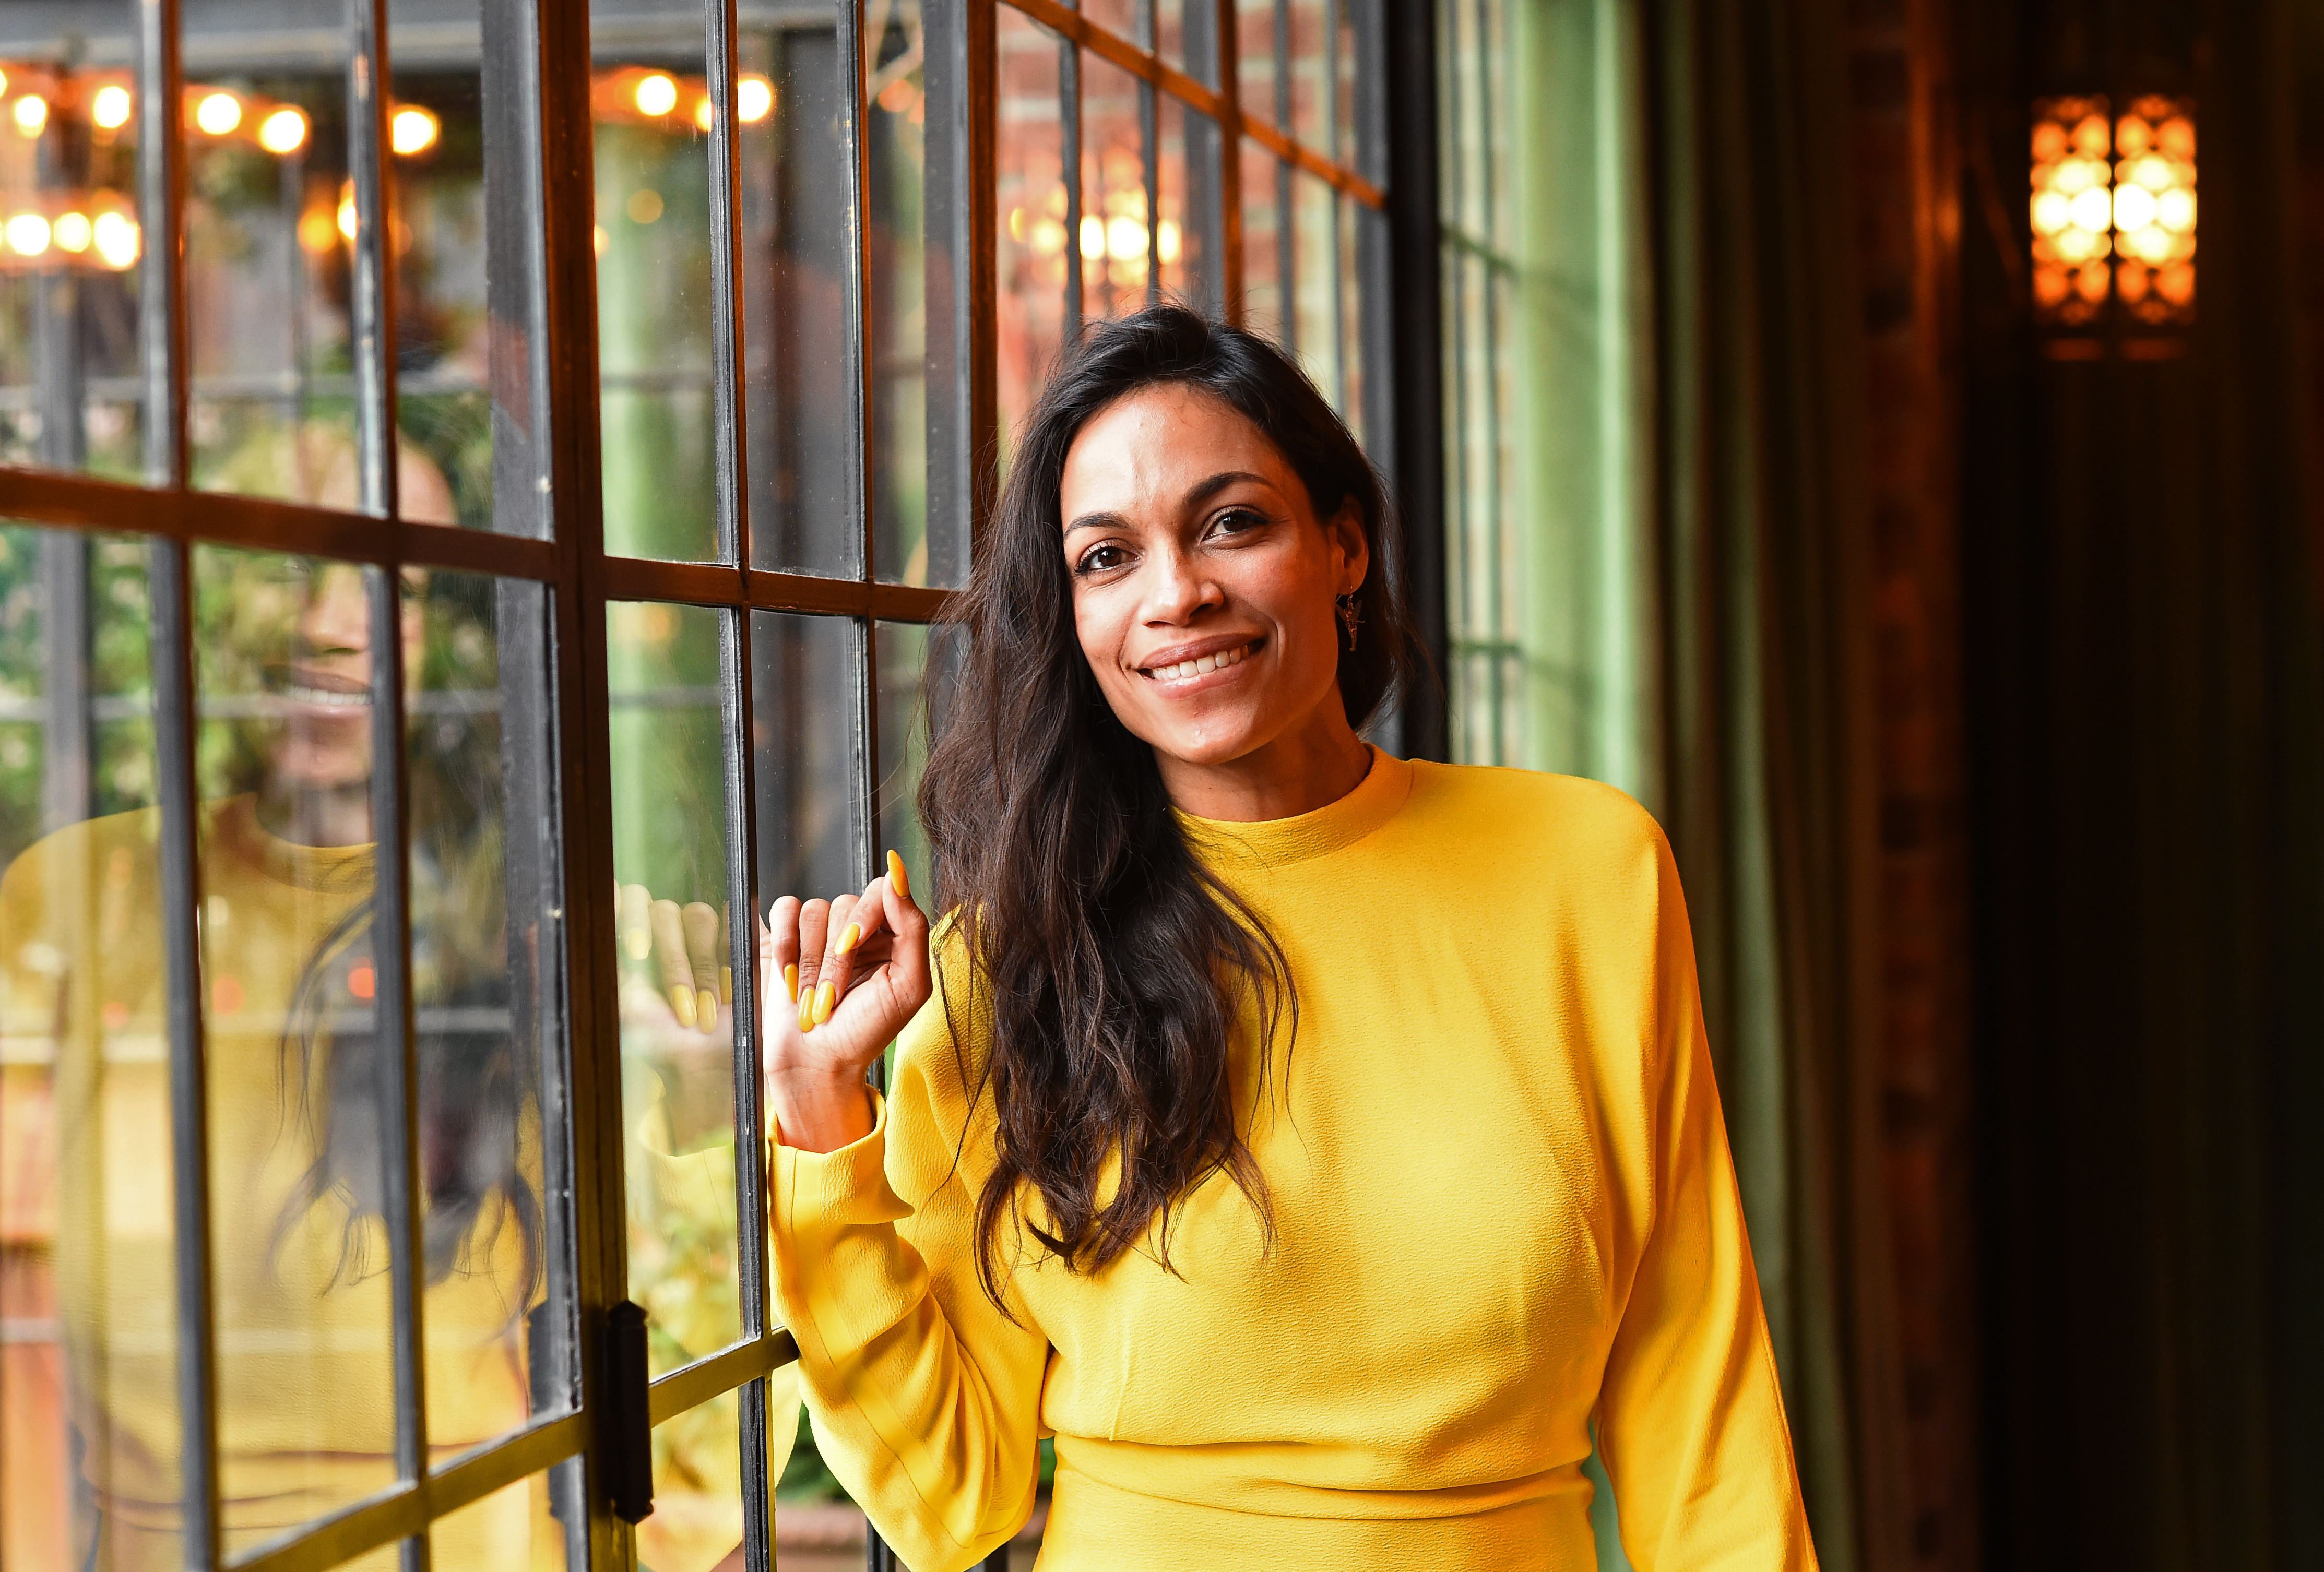 Actress Rosario Dawson attends 2017 Lower Eastside Girls Club Spring Fling And Awards Gala at The Bowery Terrace at the Bowery Hotel on May 24, 2017 in New York City.